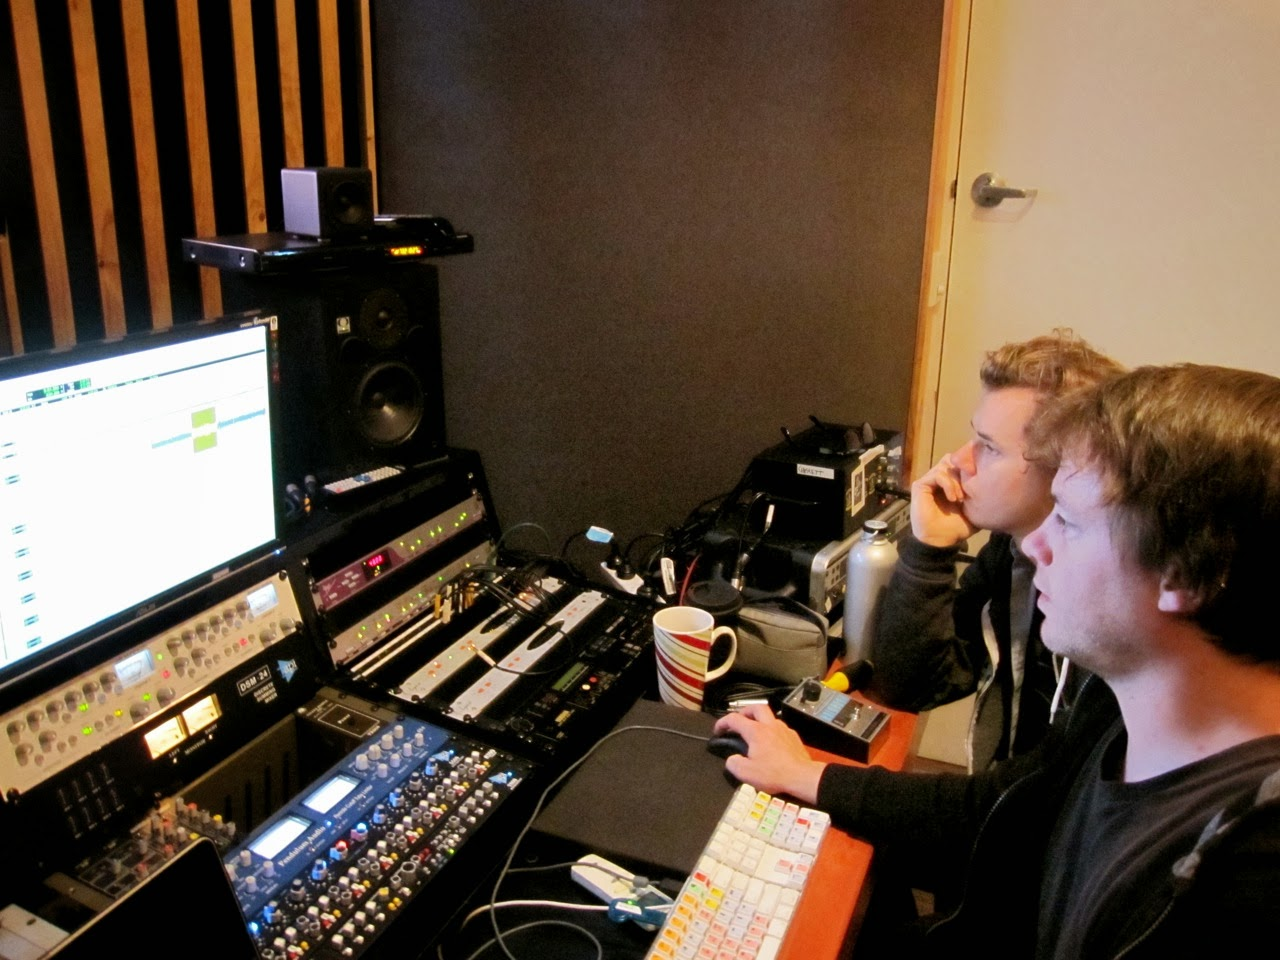 Hillsong Kiev - Океаны 2014 recording sessions at studio